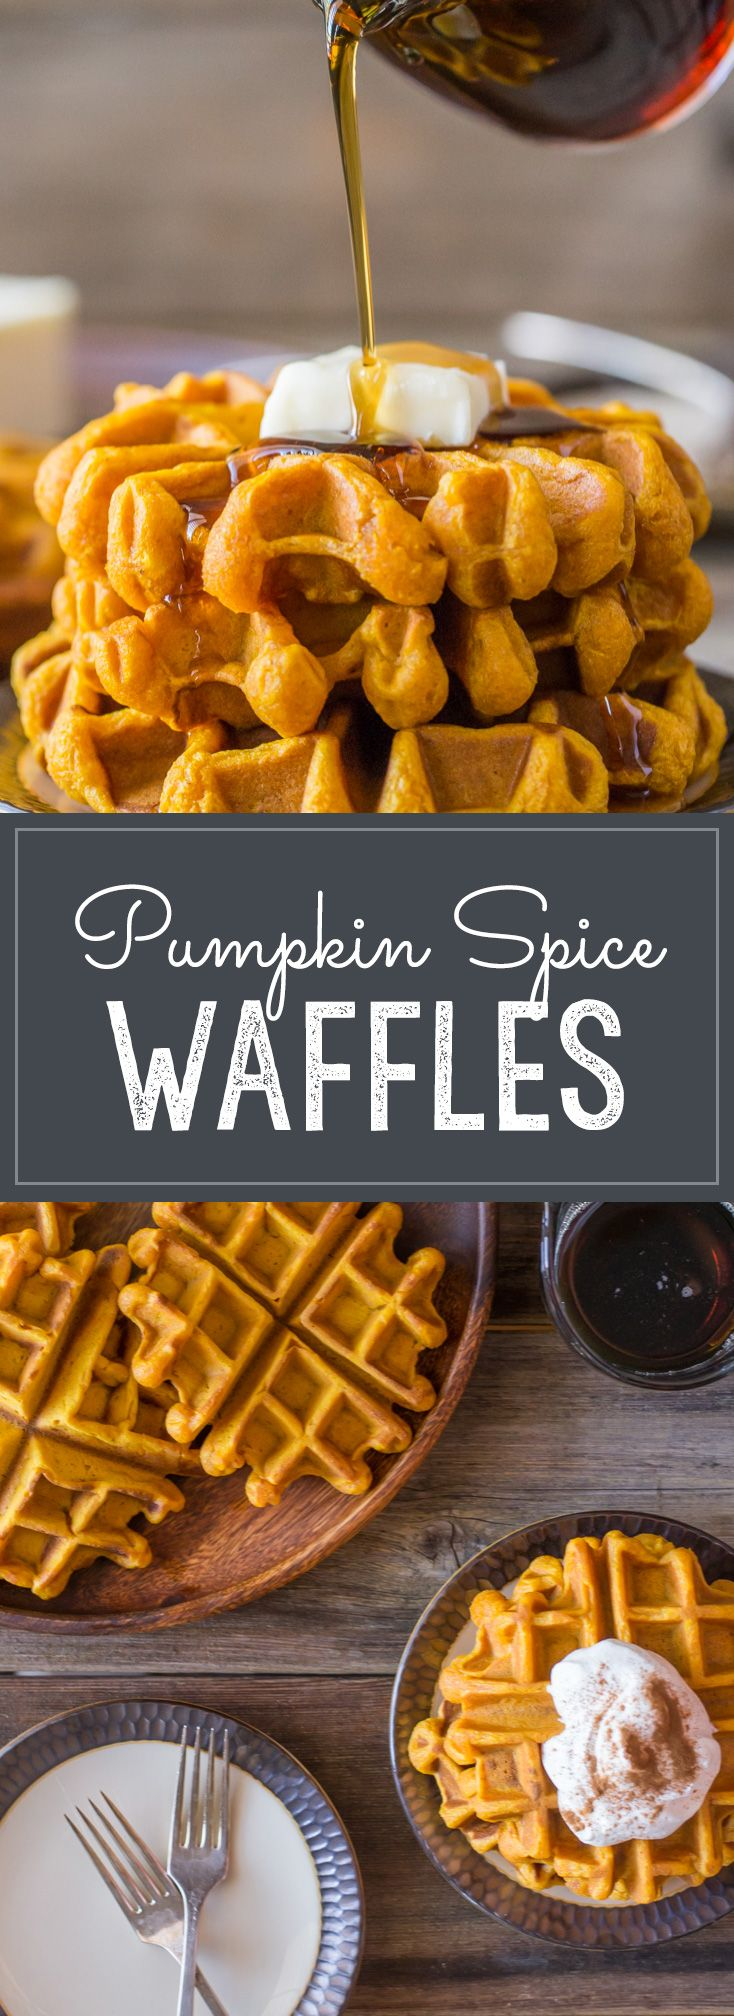 Made with pure pumpkin puree and coconut oil, these waffles are moist, fluffy and ready for maple syrup